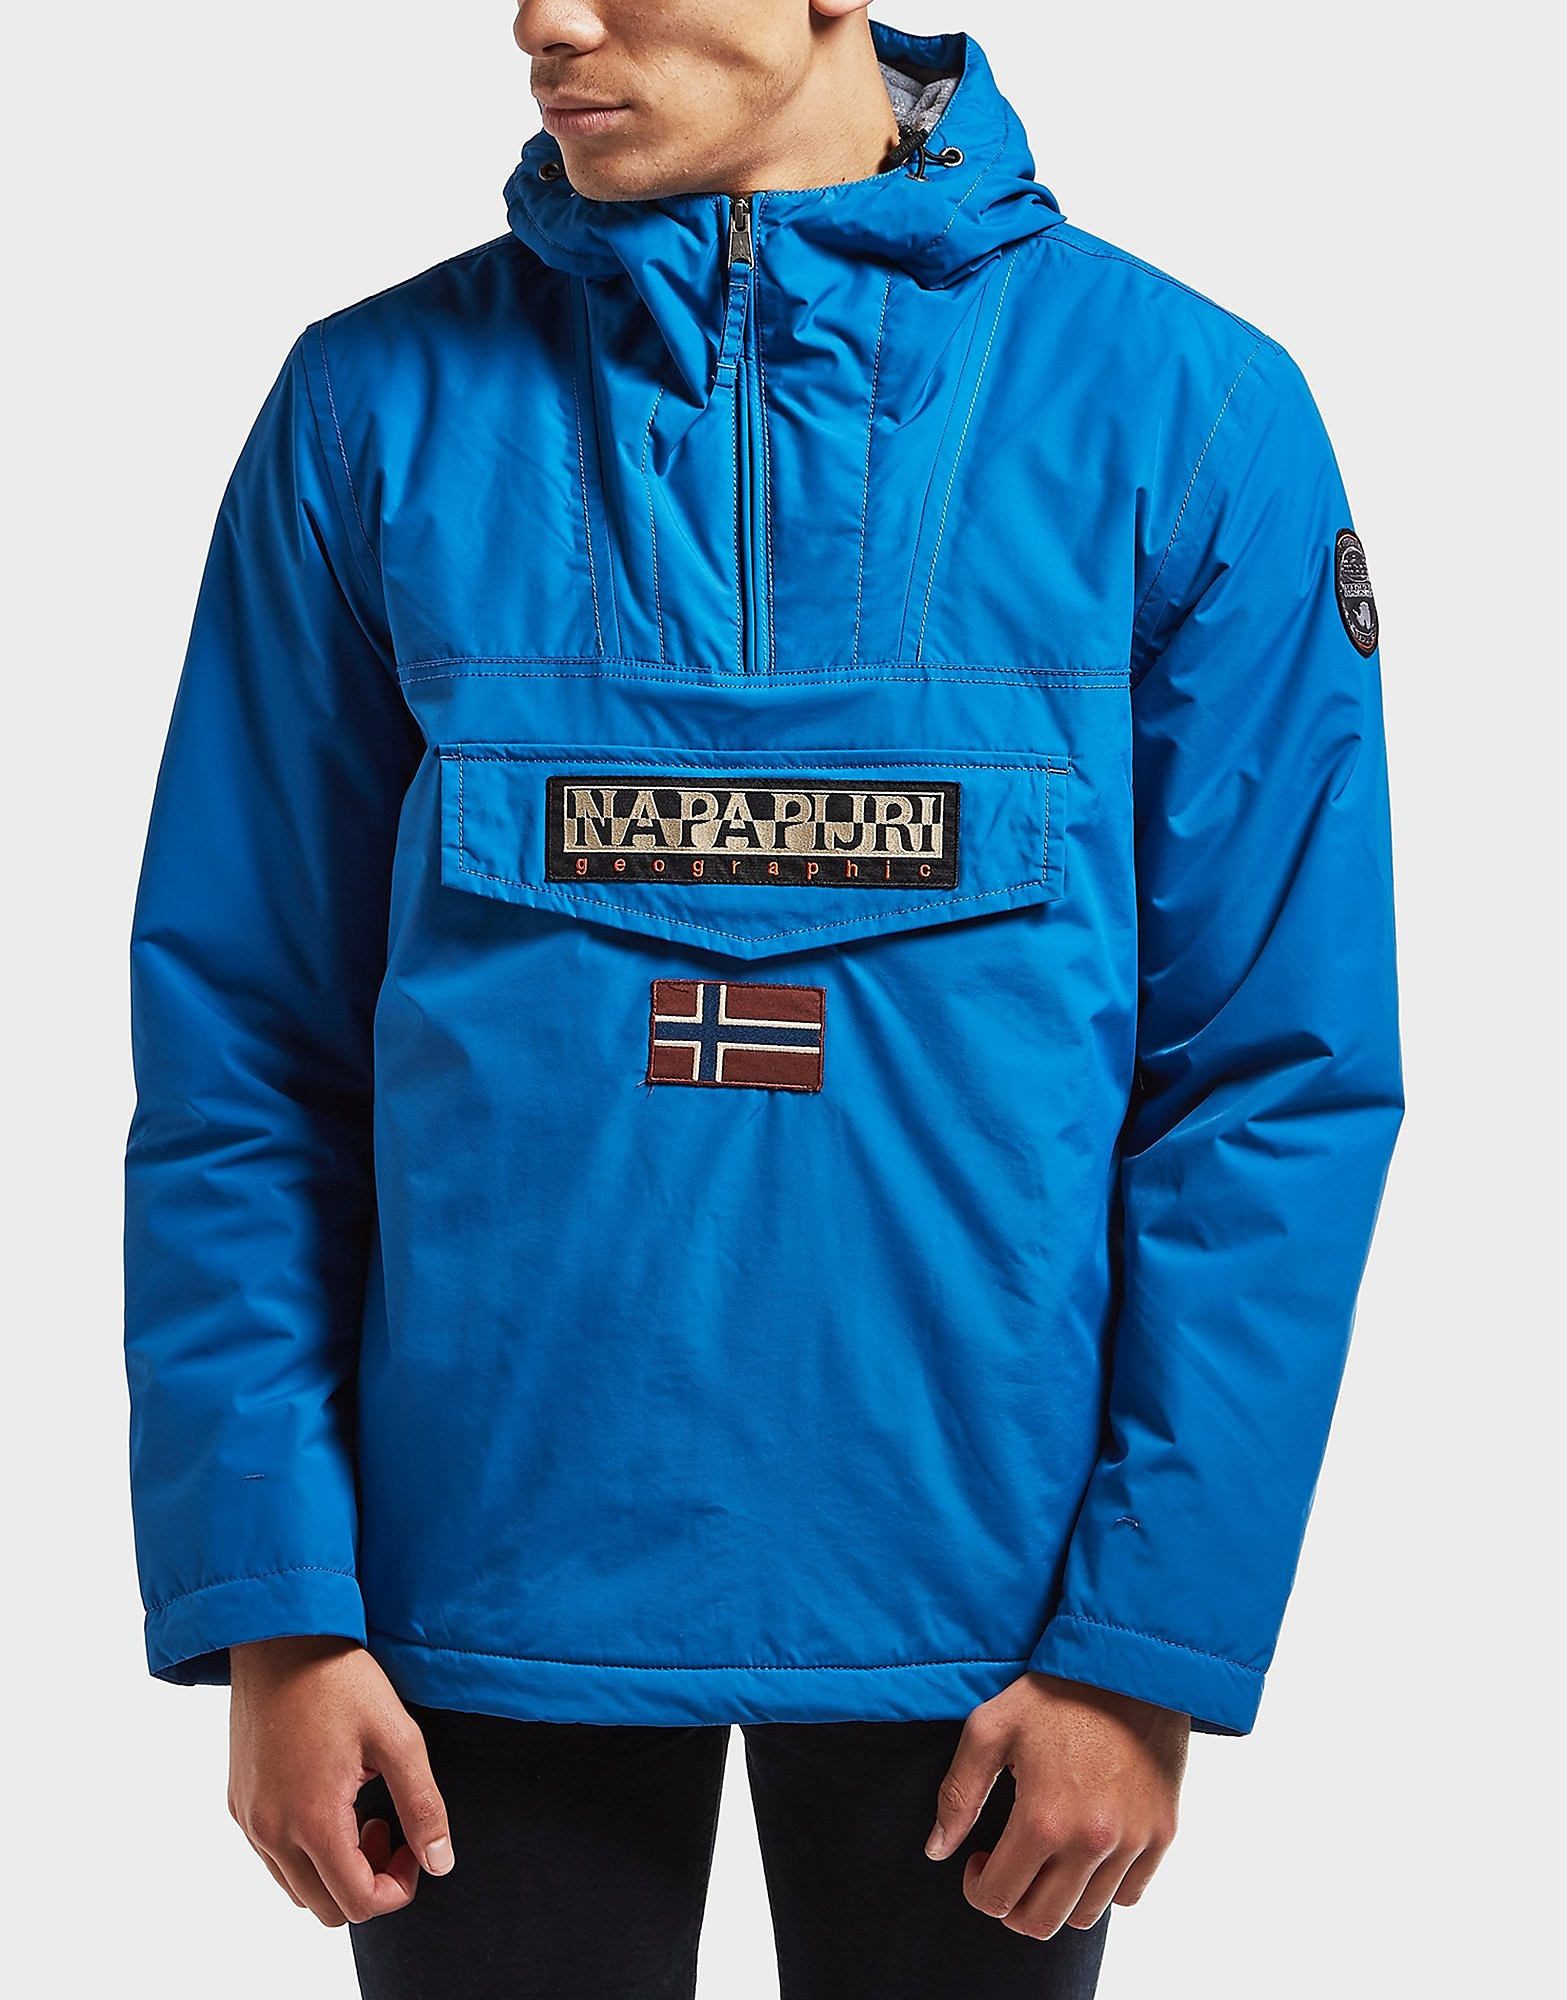 Napapijri Rainforest Winter Jacket